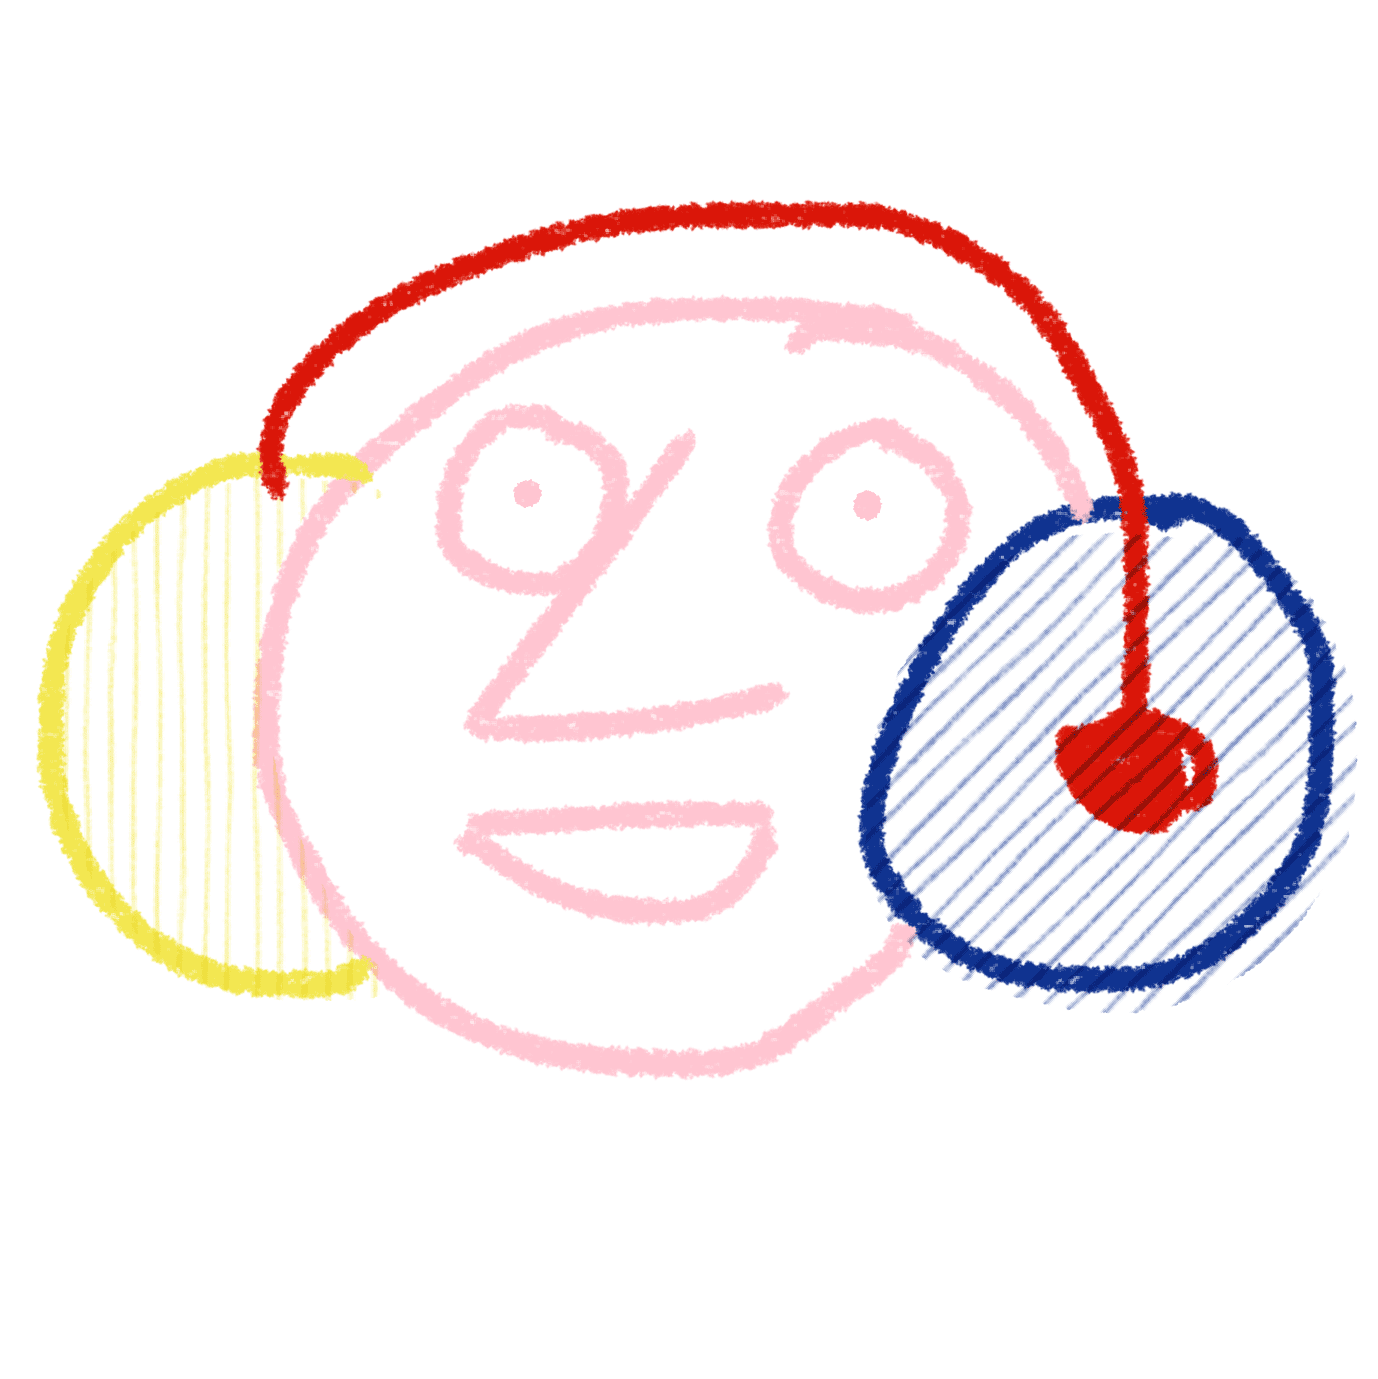 2xUX_podcasts.png